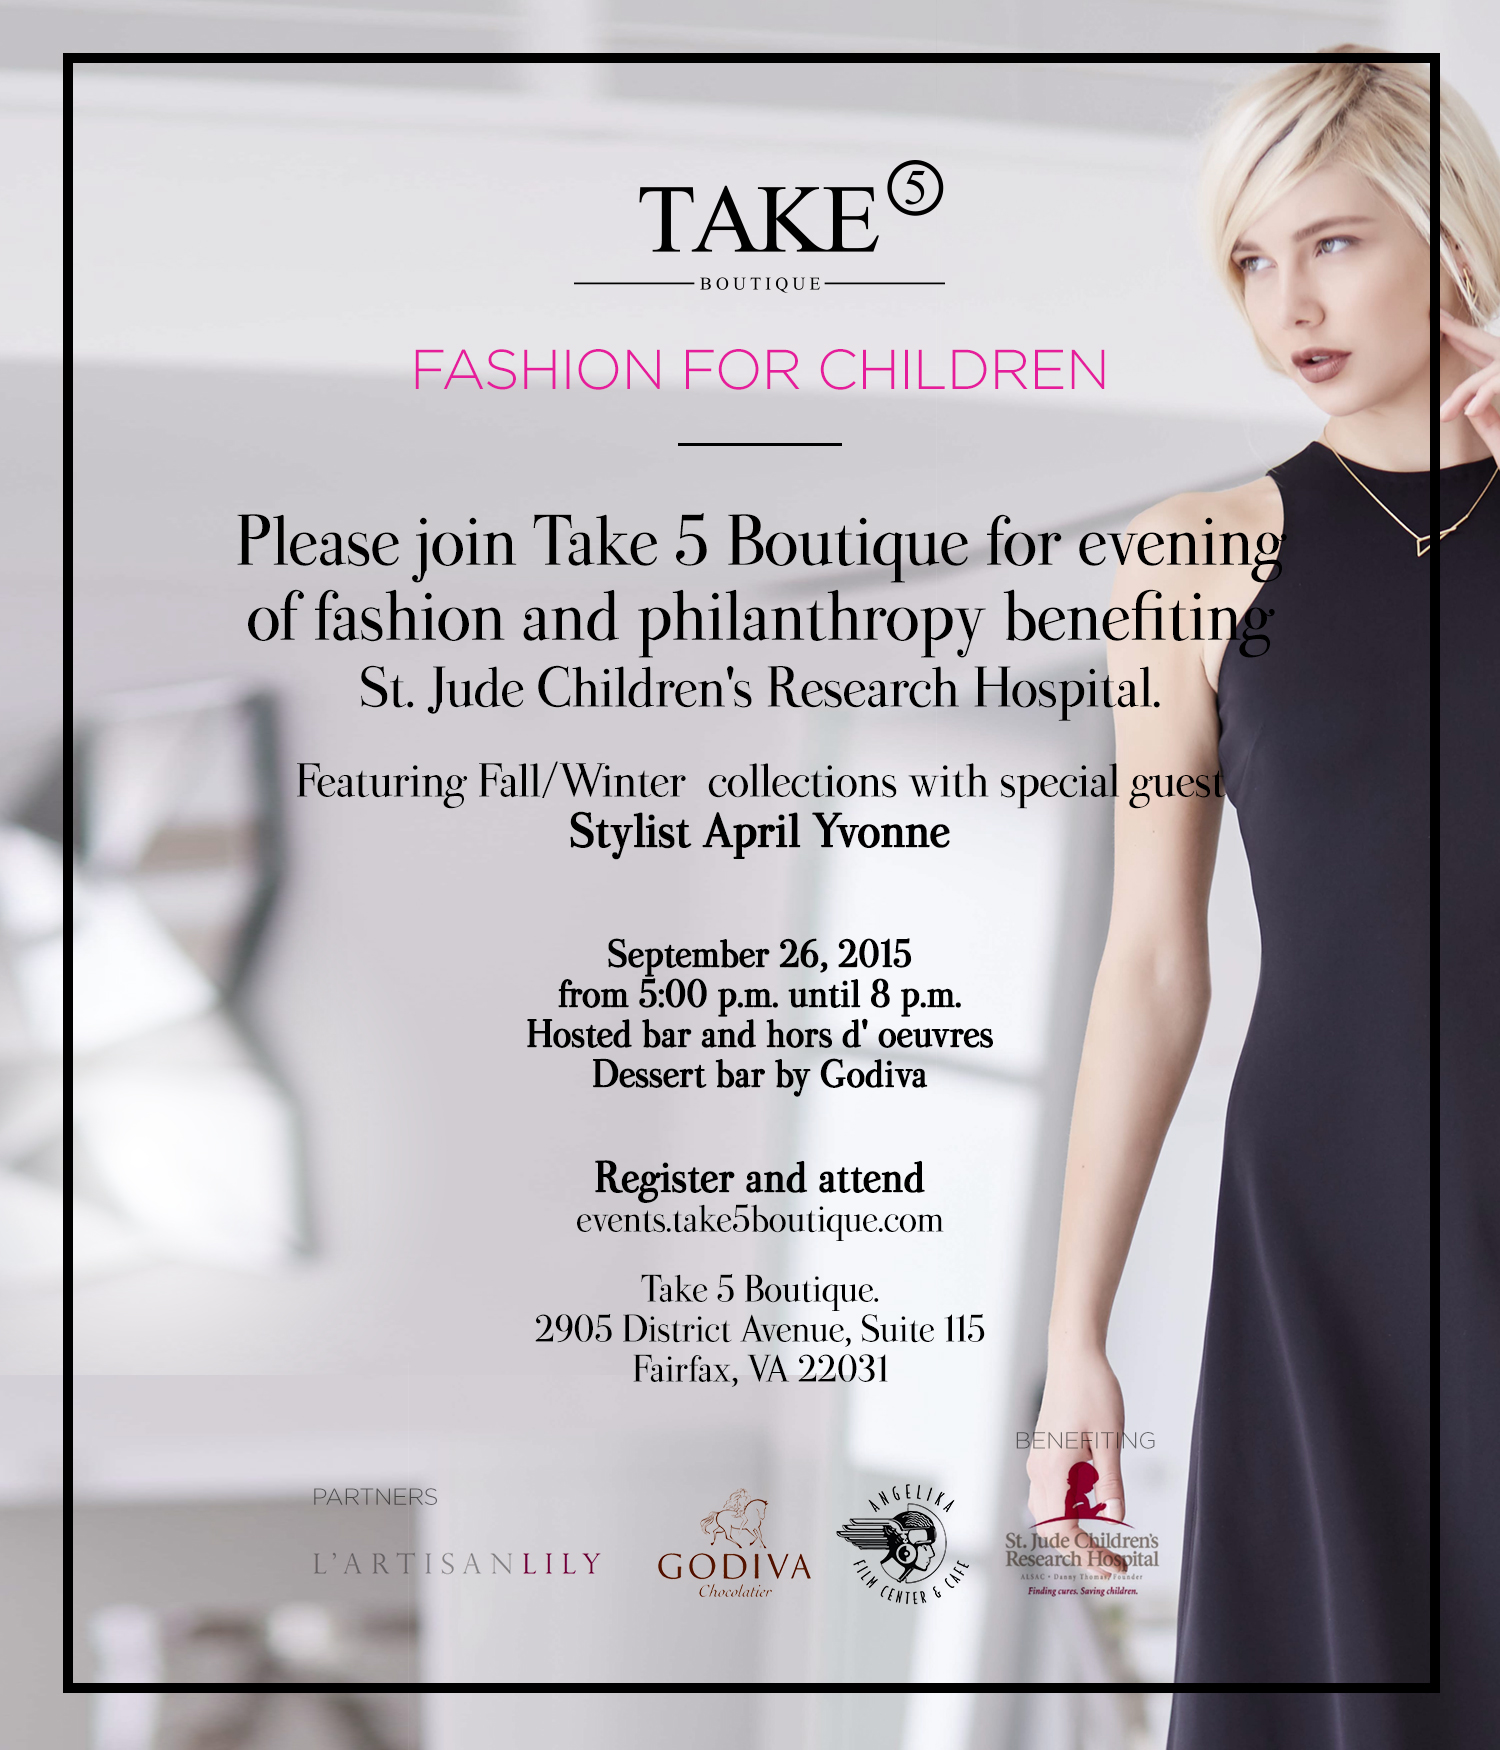 Please join Take 5 Boutique for evening of fashion and philanthropybenefiting St. Jude Children's Research Hospital.  FASHION FOR CHILDREN  Fashion show featuring pre-Fall/ Fall collections withspecial guest Stylist April Yvonne  Saturday, September 26, 2015from 5:00 p.m. until 8 p.m.Hosted bar and hors d' oeuvres  Take 5 Boutique2905 District Avenue, Suite 115Fairfax, VA 22031Tel: 301-500-0132  Proceeds from tickets and 10% of saleswill benefit St. Jude Children's Research Hospital